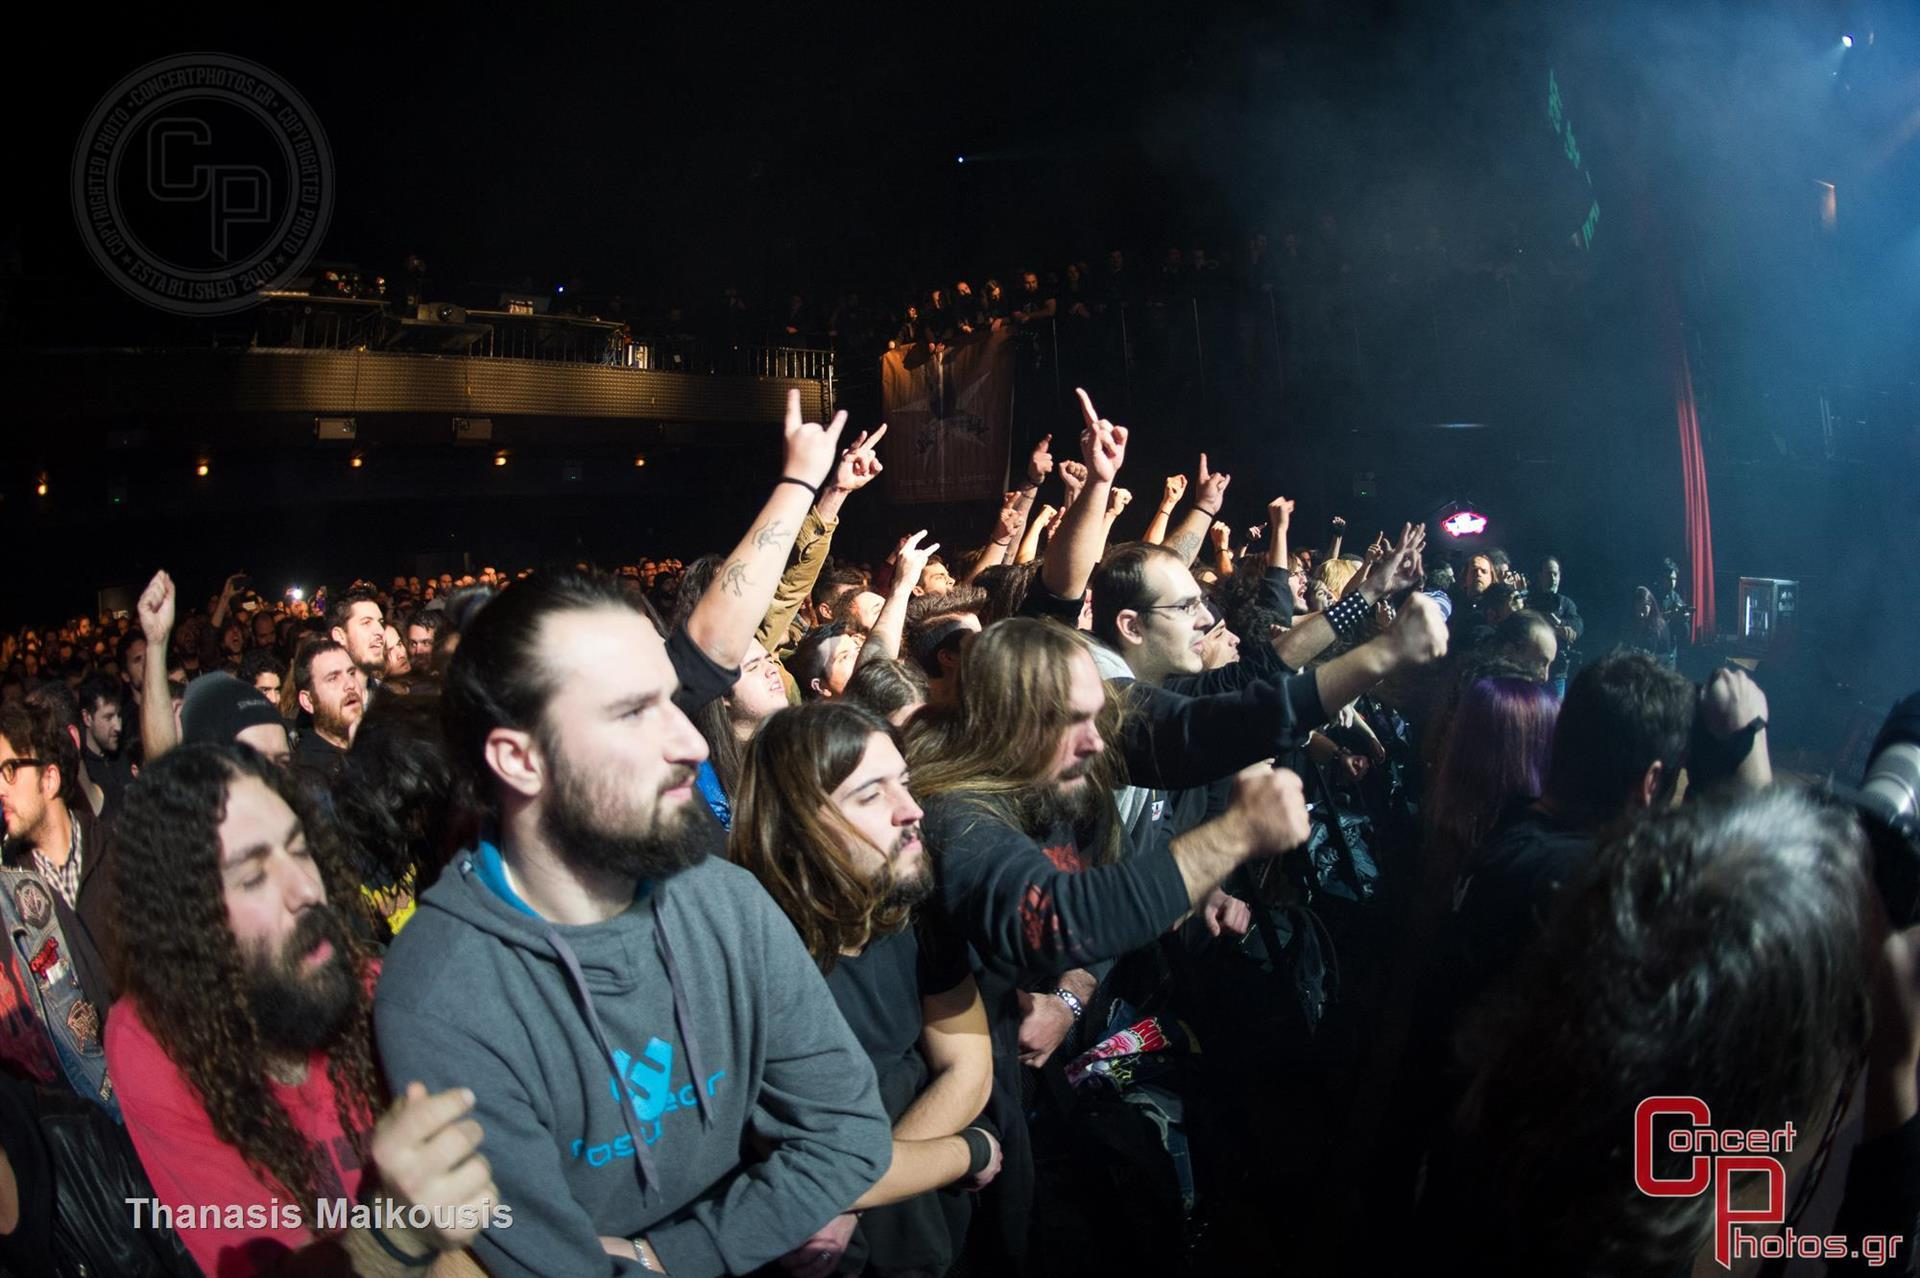 At The Gates-At The Gates Fuzz photographer: Thanasis Maikousis - ConcertPhotos - 20150109_2337_39